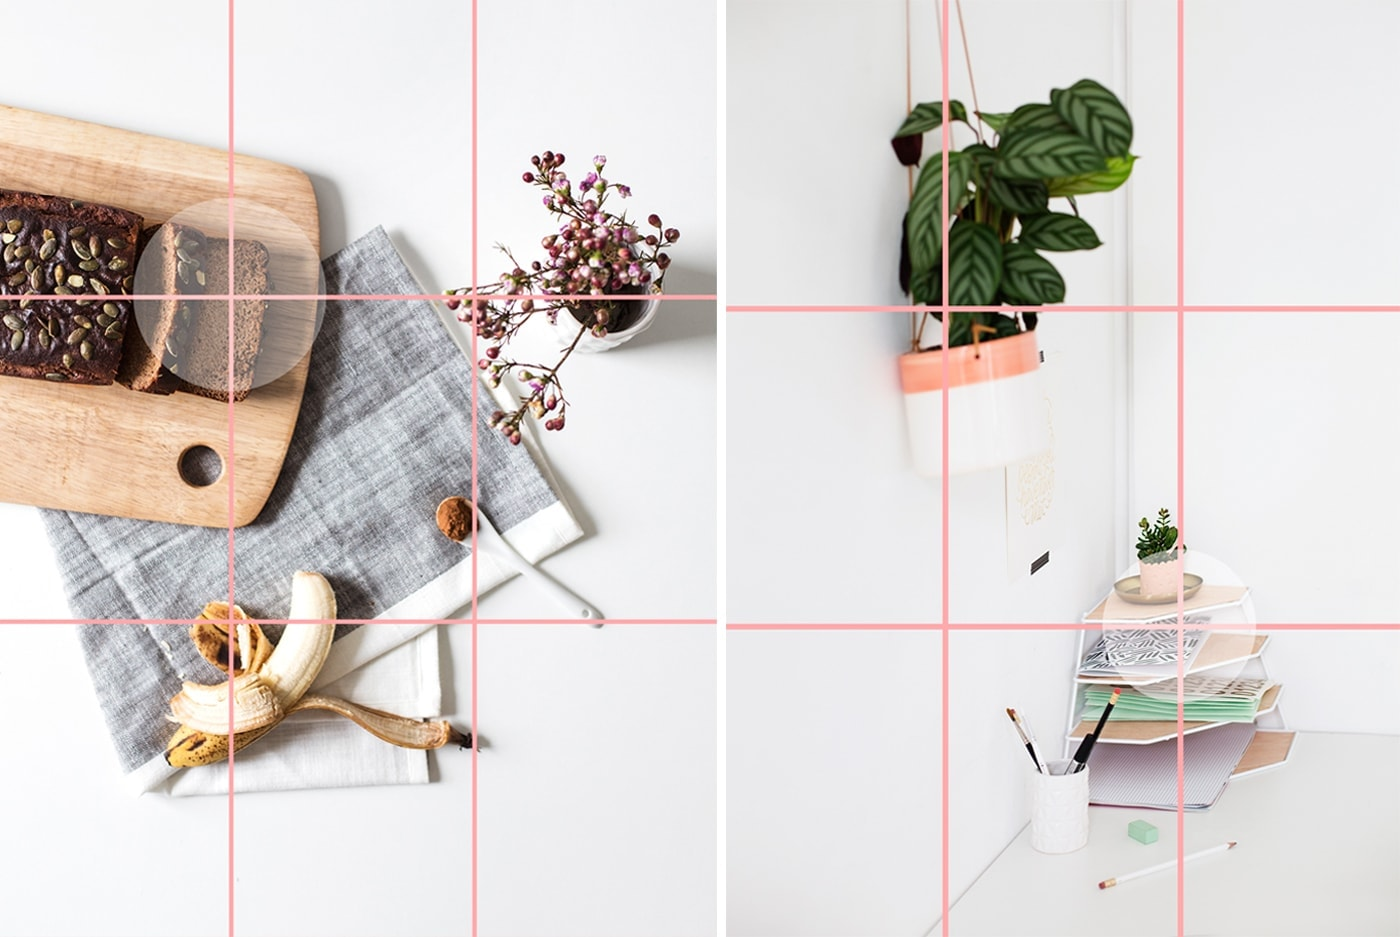 blogger photography tips | rule of thirds